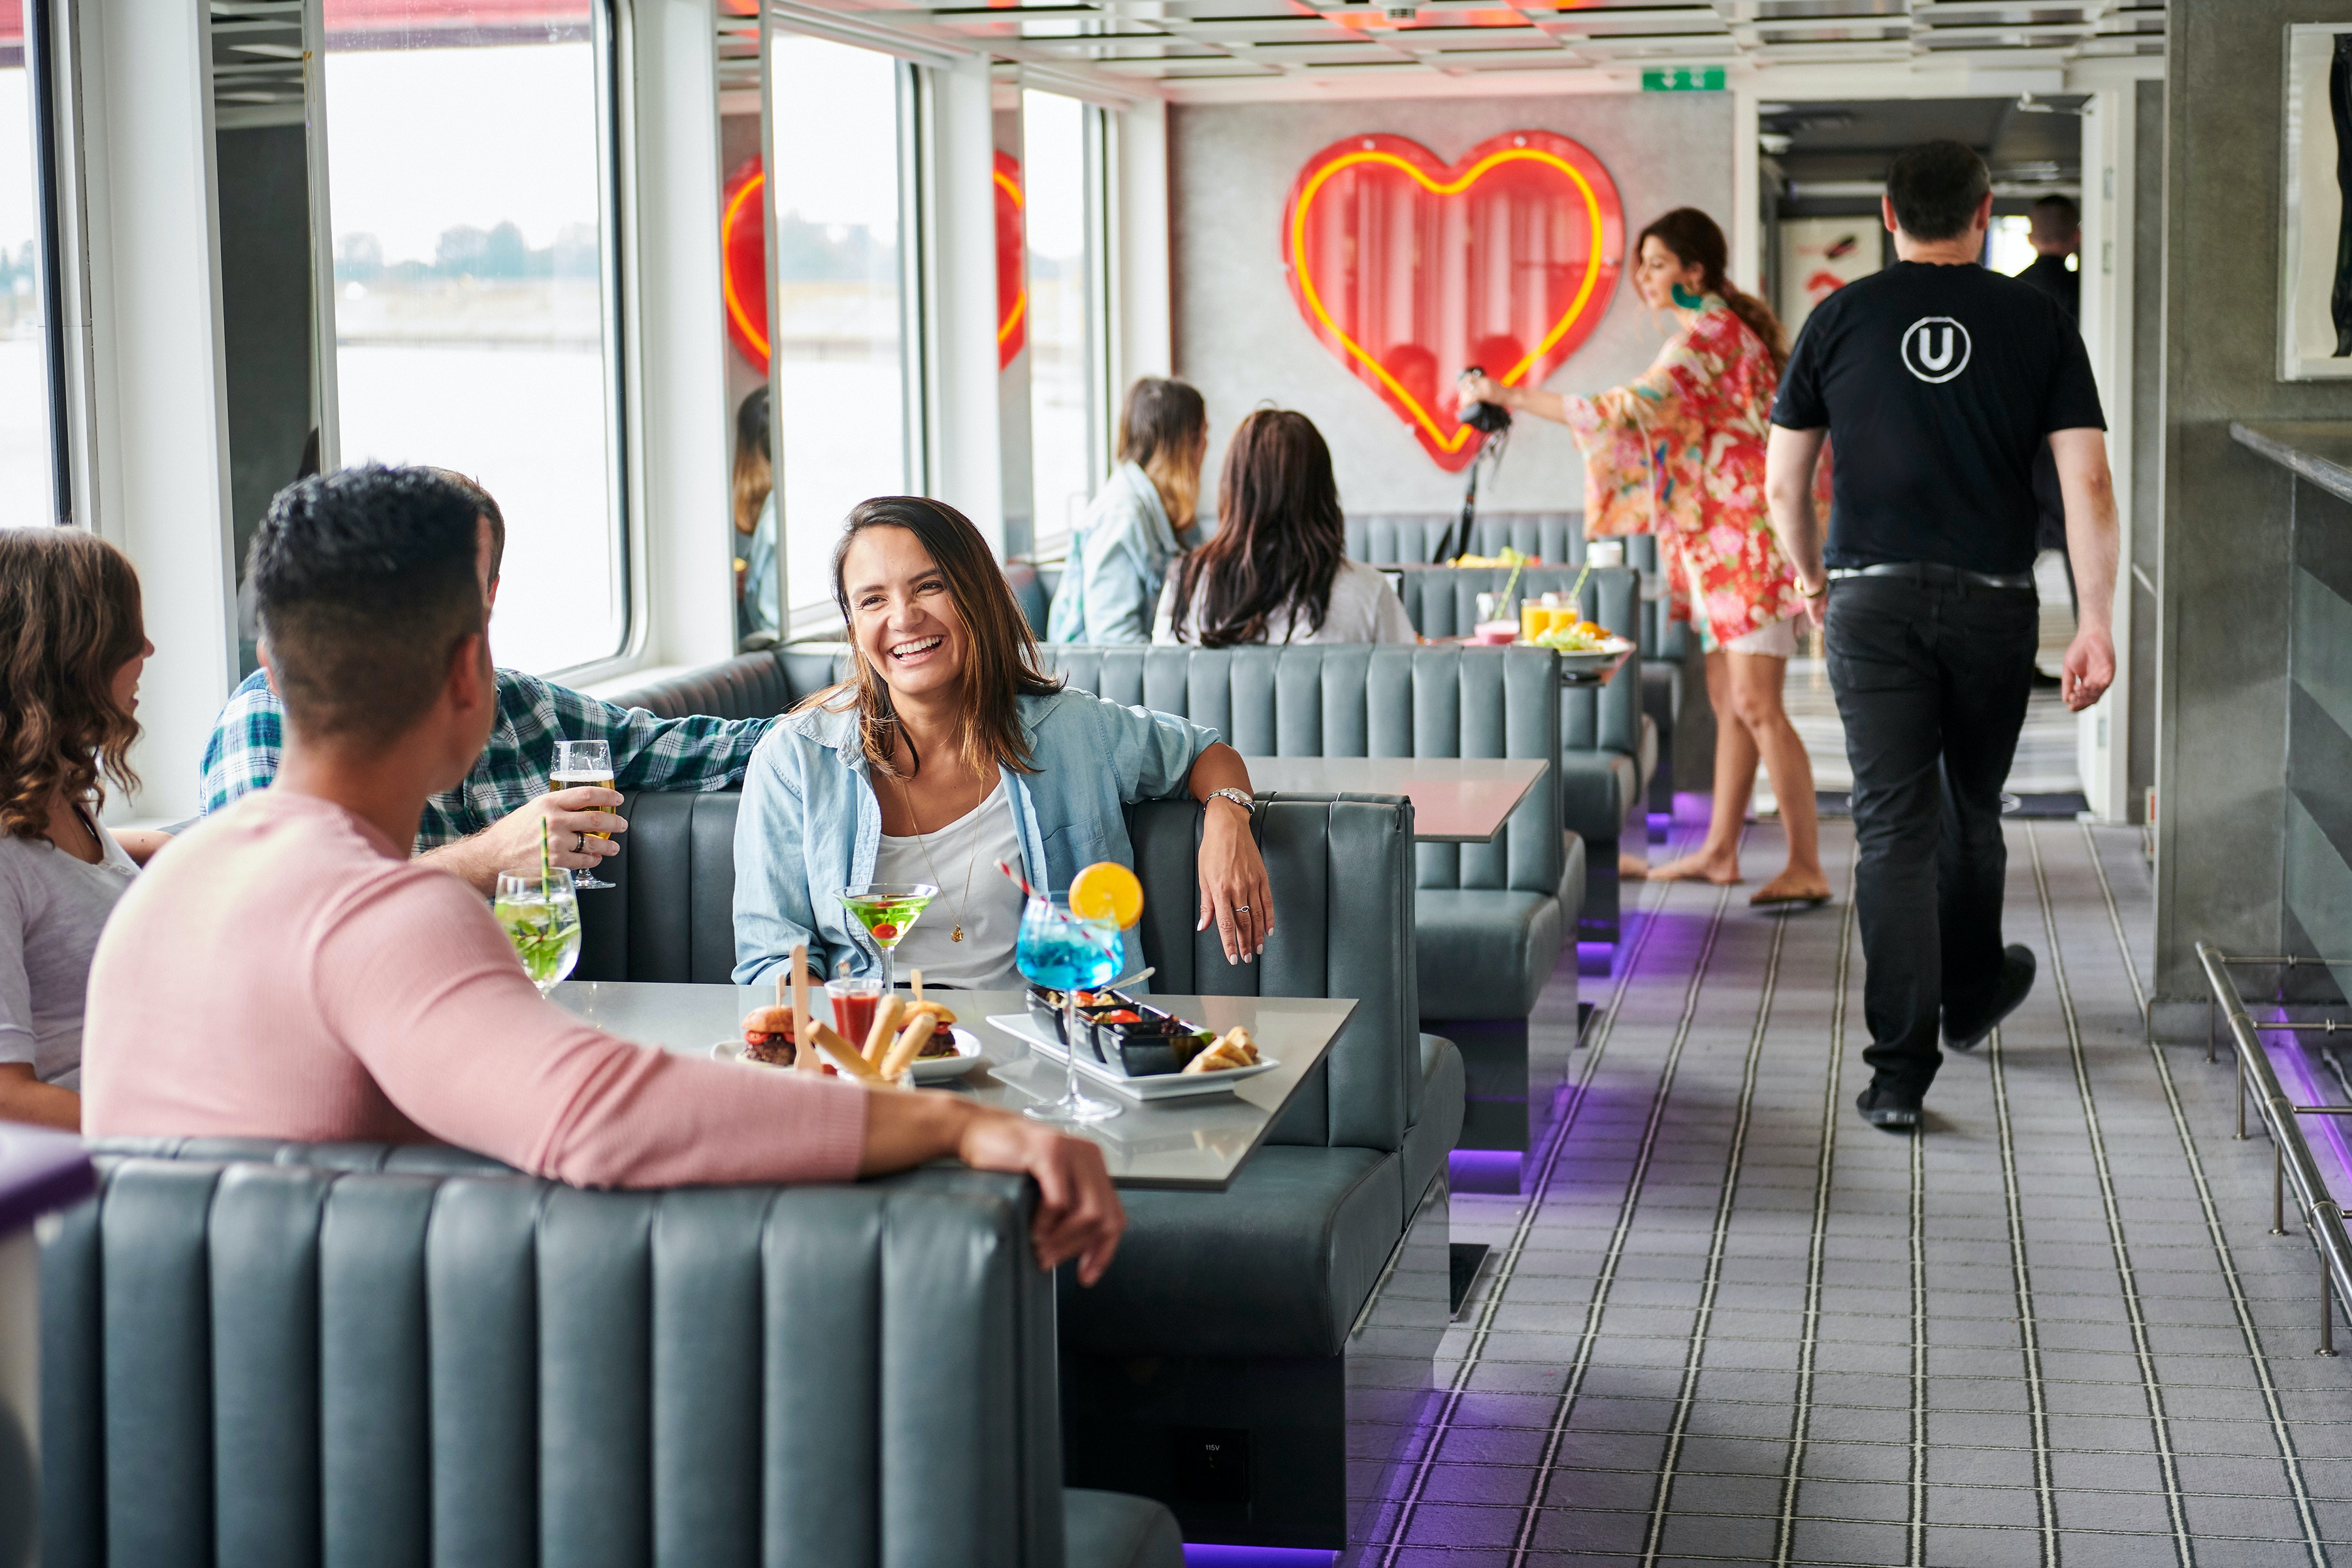 Passengers mingle in the lounge on The A, one of the two adult-only river cruise ships operated by U by Uniworld.